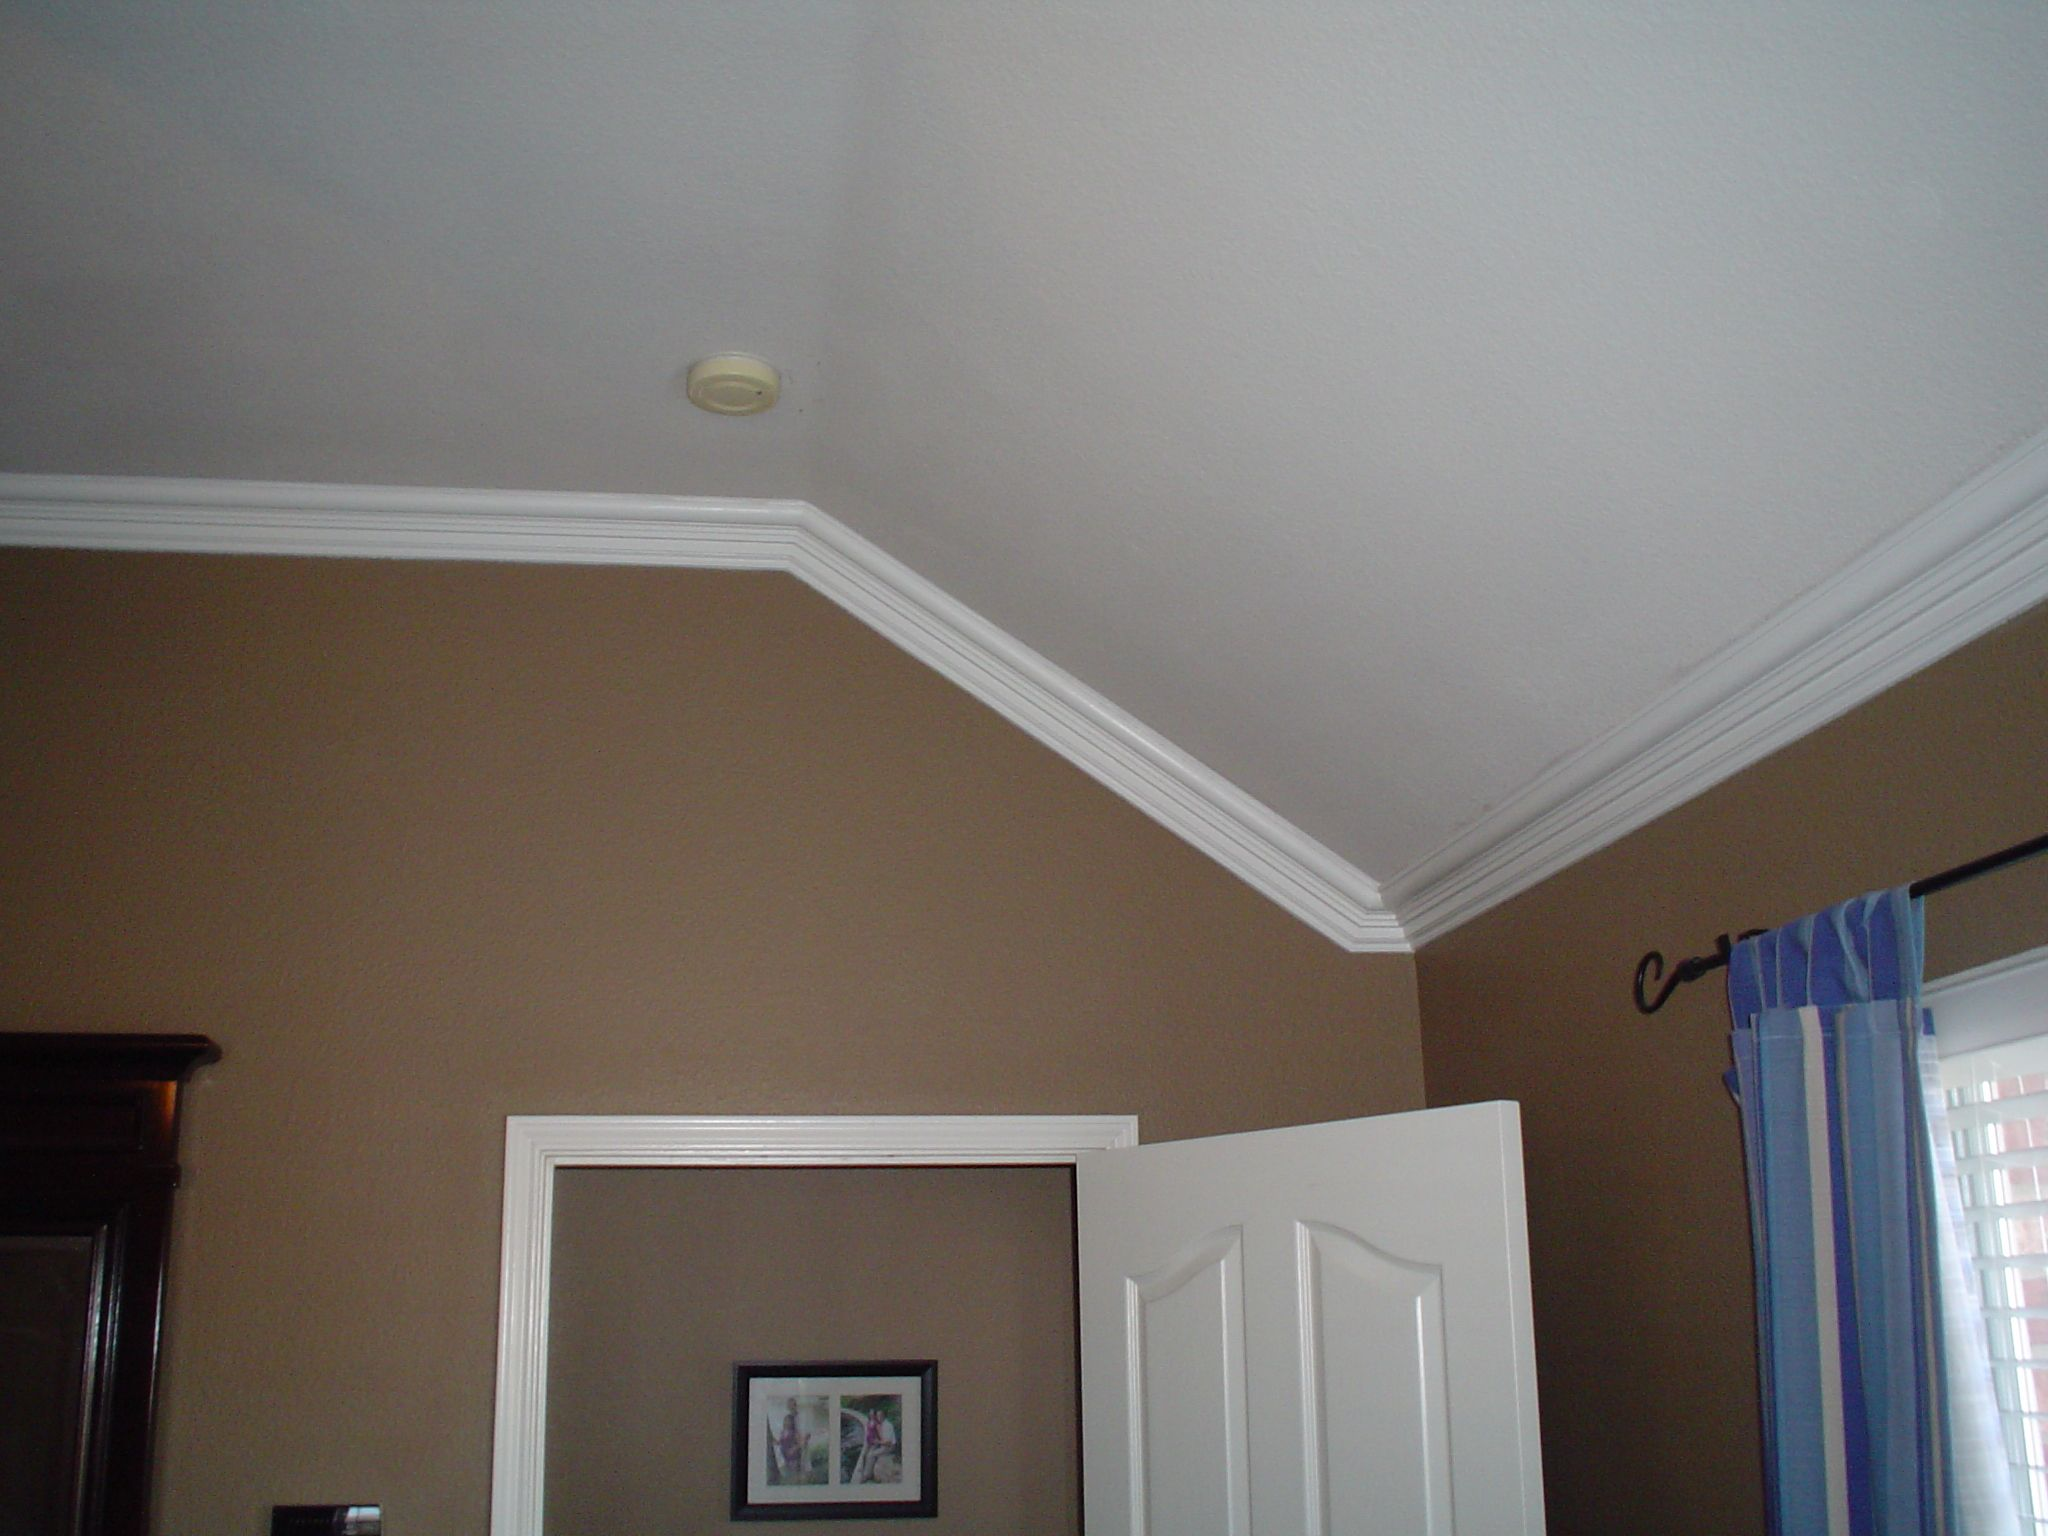 How to cut crown molding for sloped ceiling (inspiration pic only ...